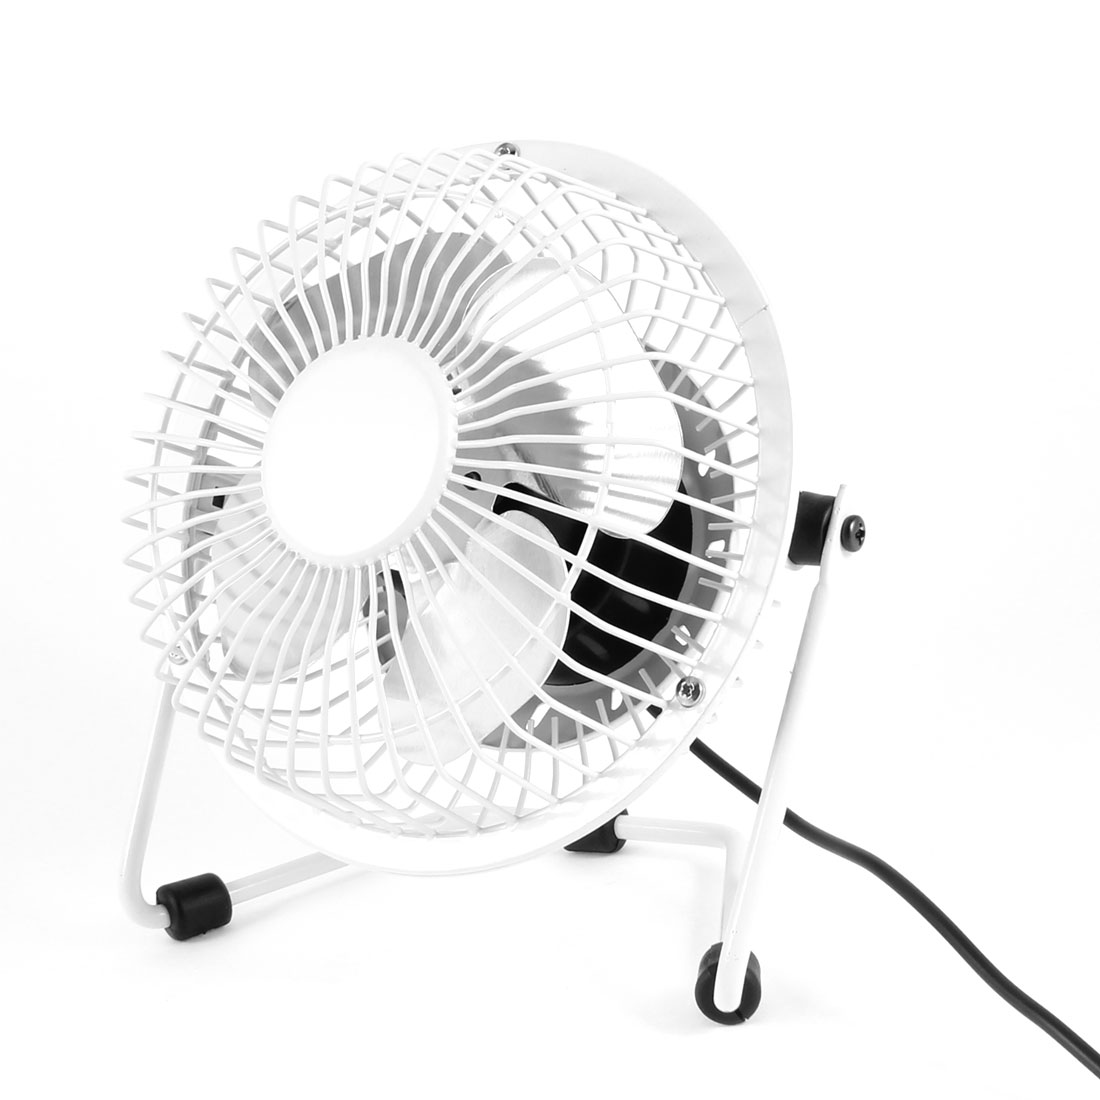 Off White 4 Cutter Adjustable Angle Tabletop USB Cooler Cooling Fan